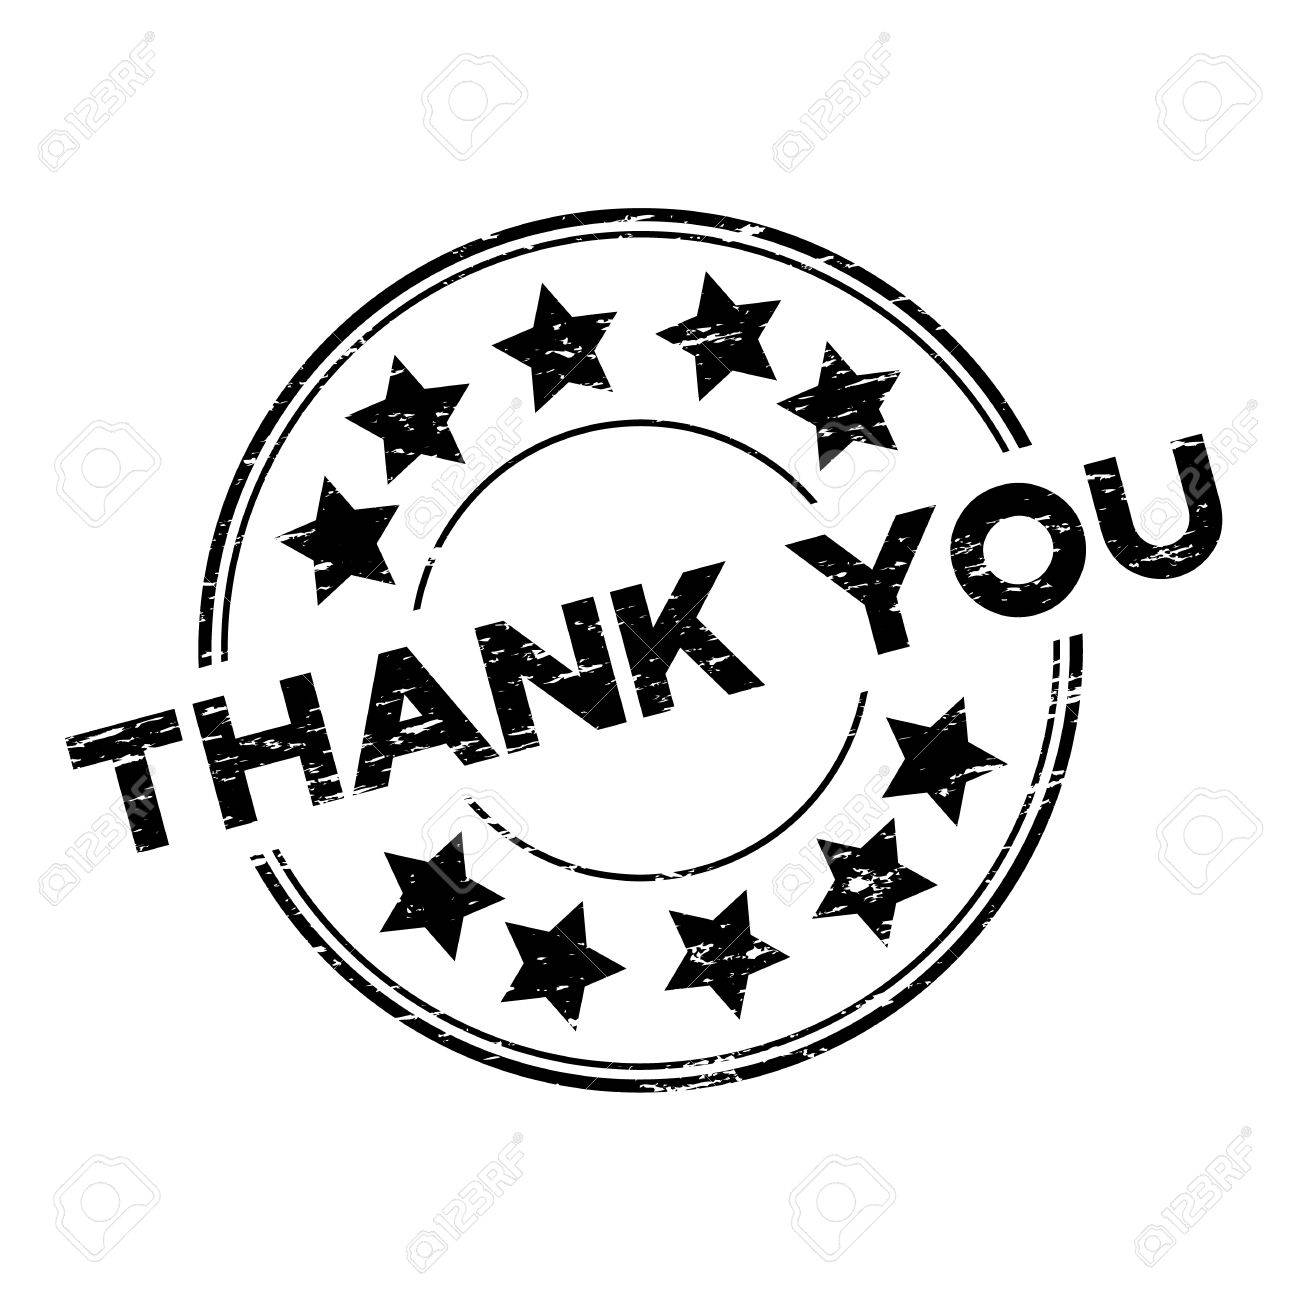 Grunge black thank you with star icon round rubber stamp on white background - 71033023